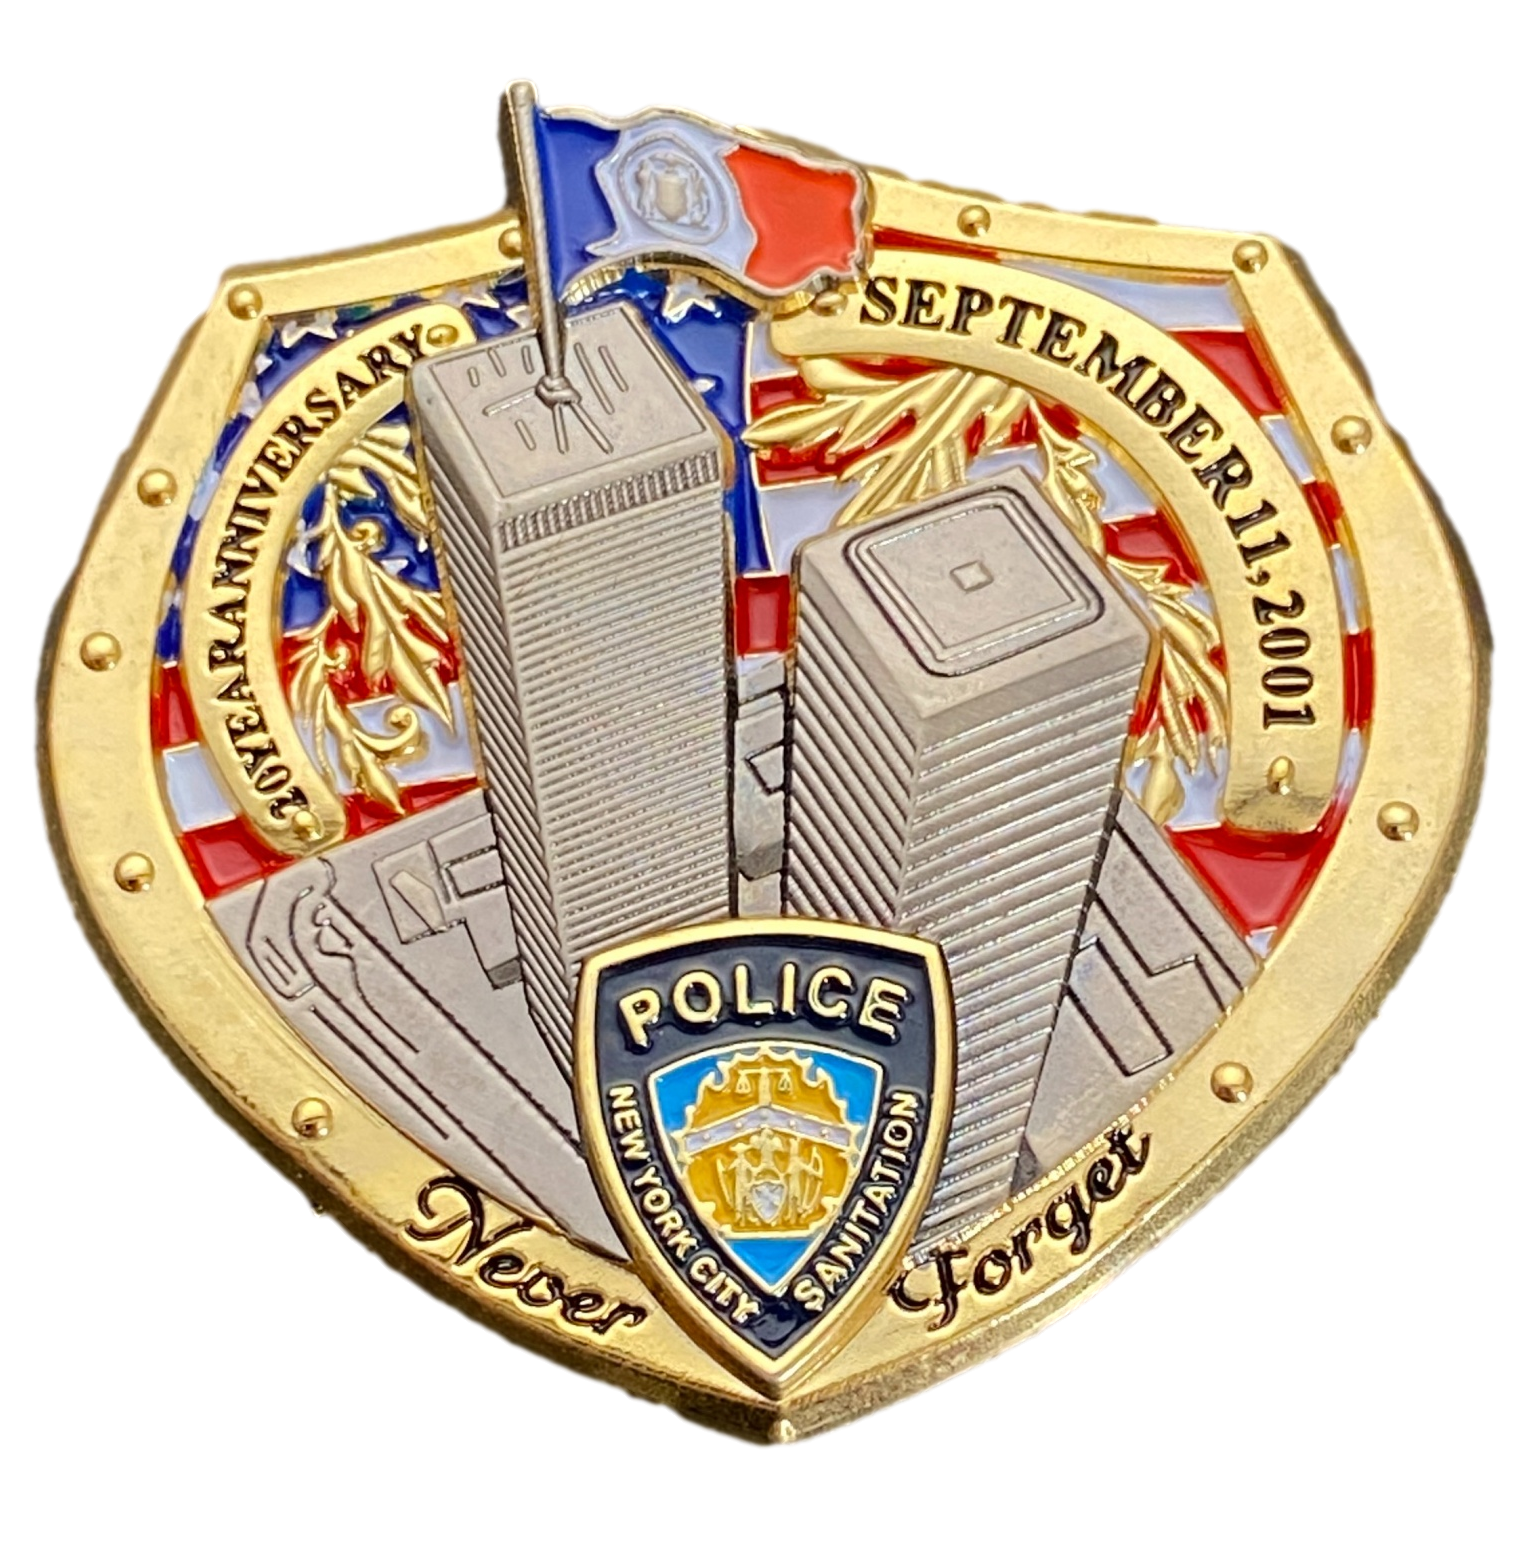 front view of police challenge coin